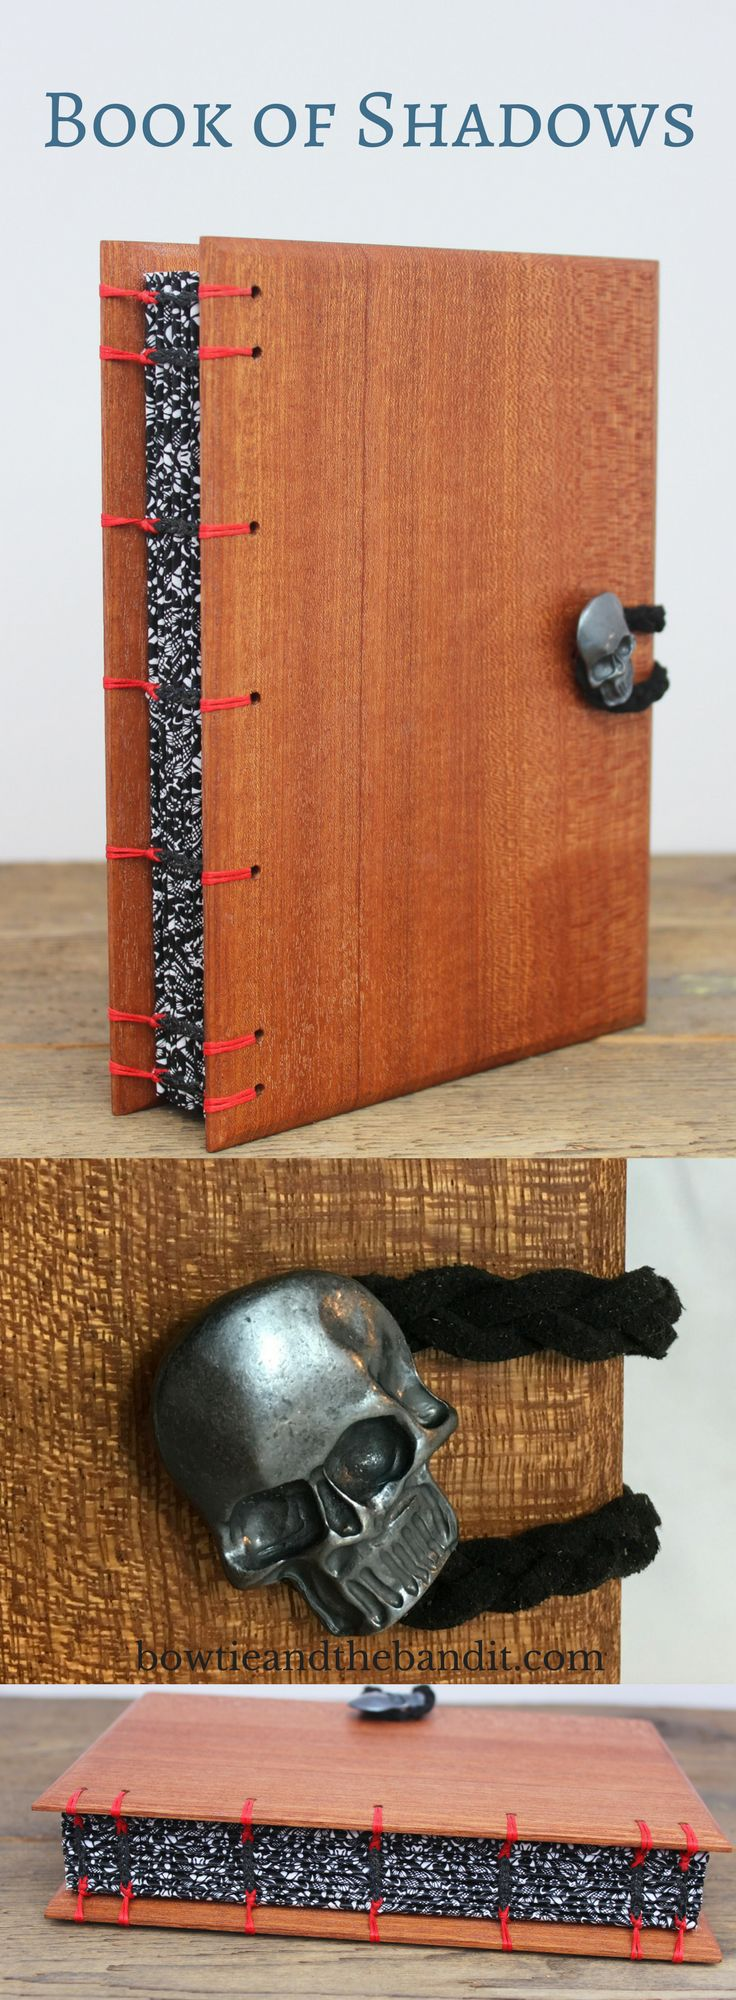 This Handcrafted Sapele Wood Book Of Shadows In Subtle And Beautiful With  180 Blank Pages